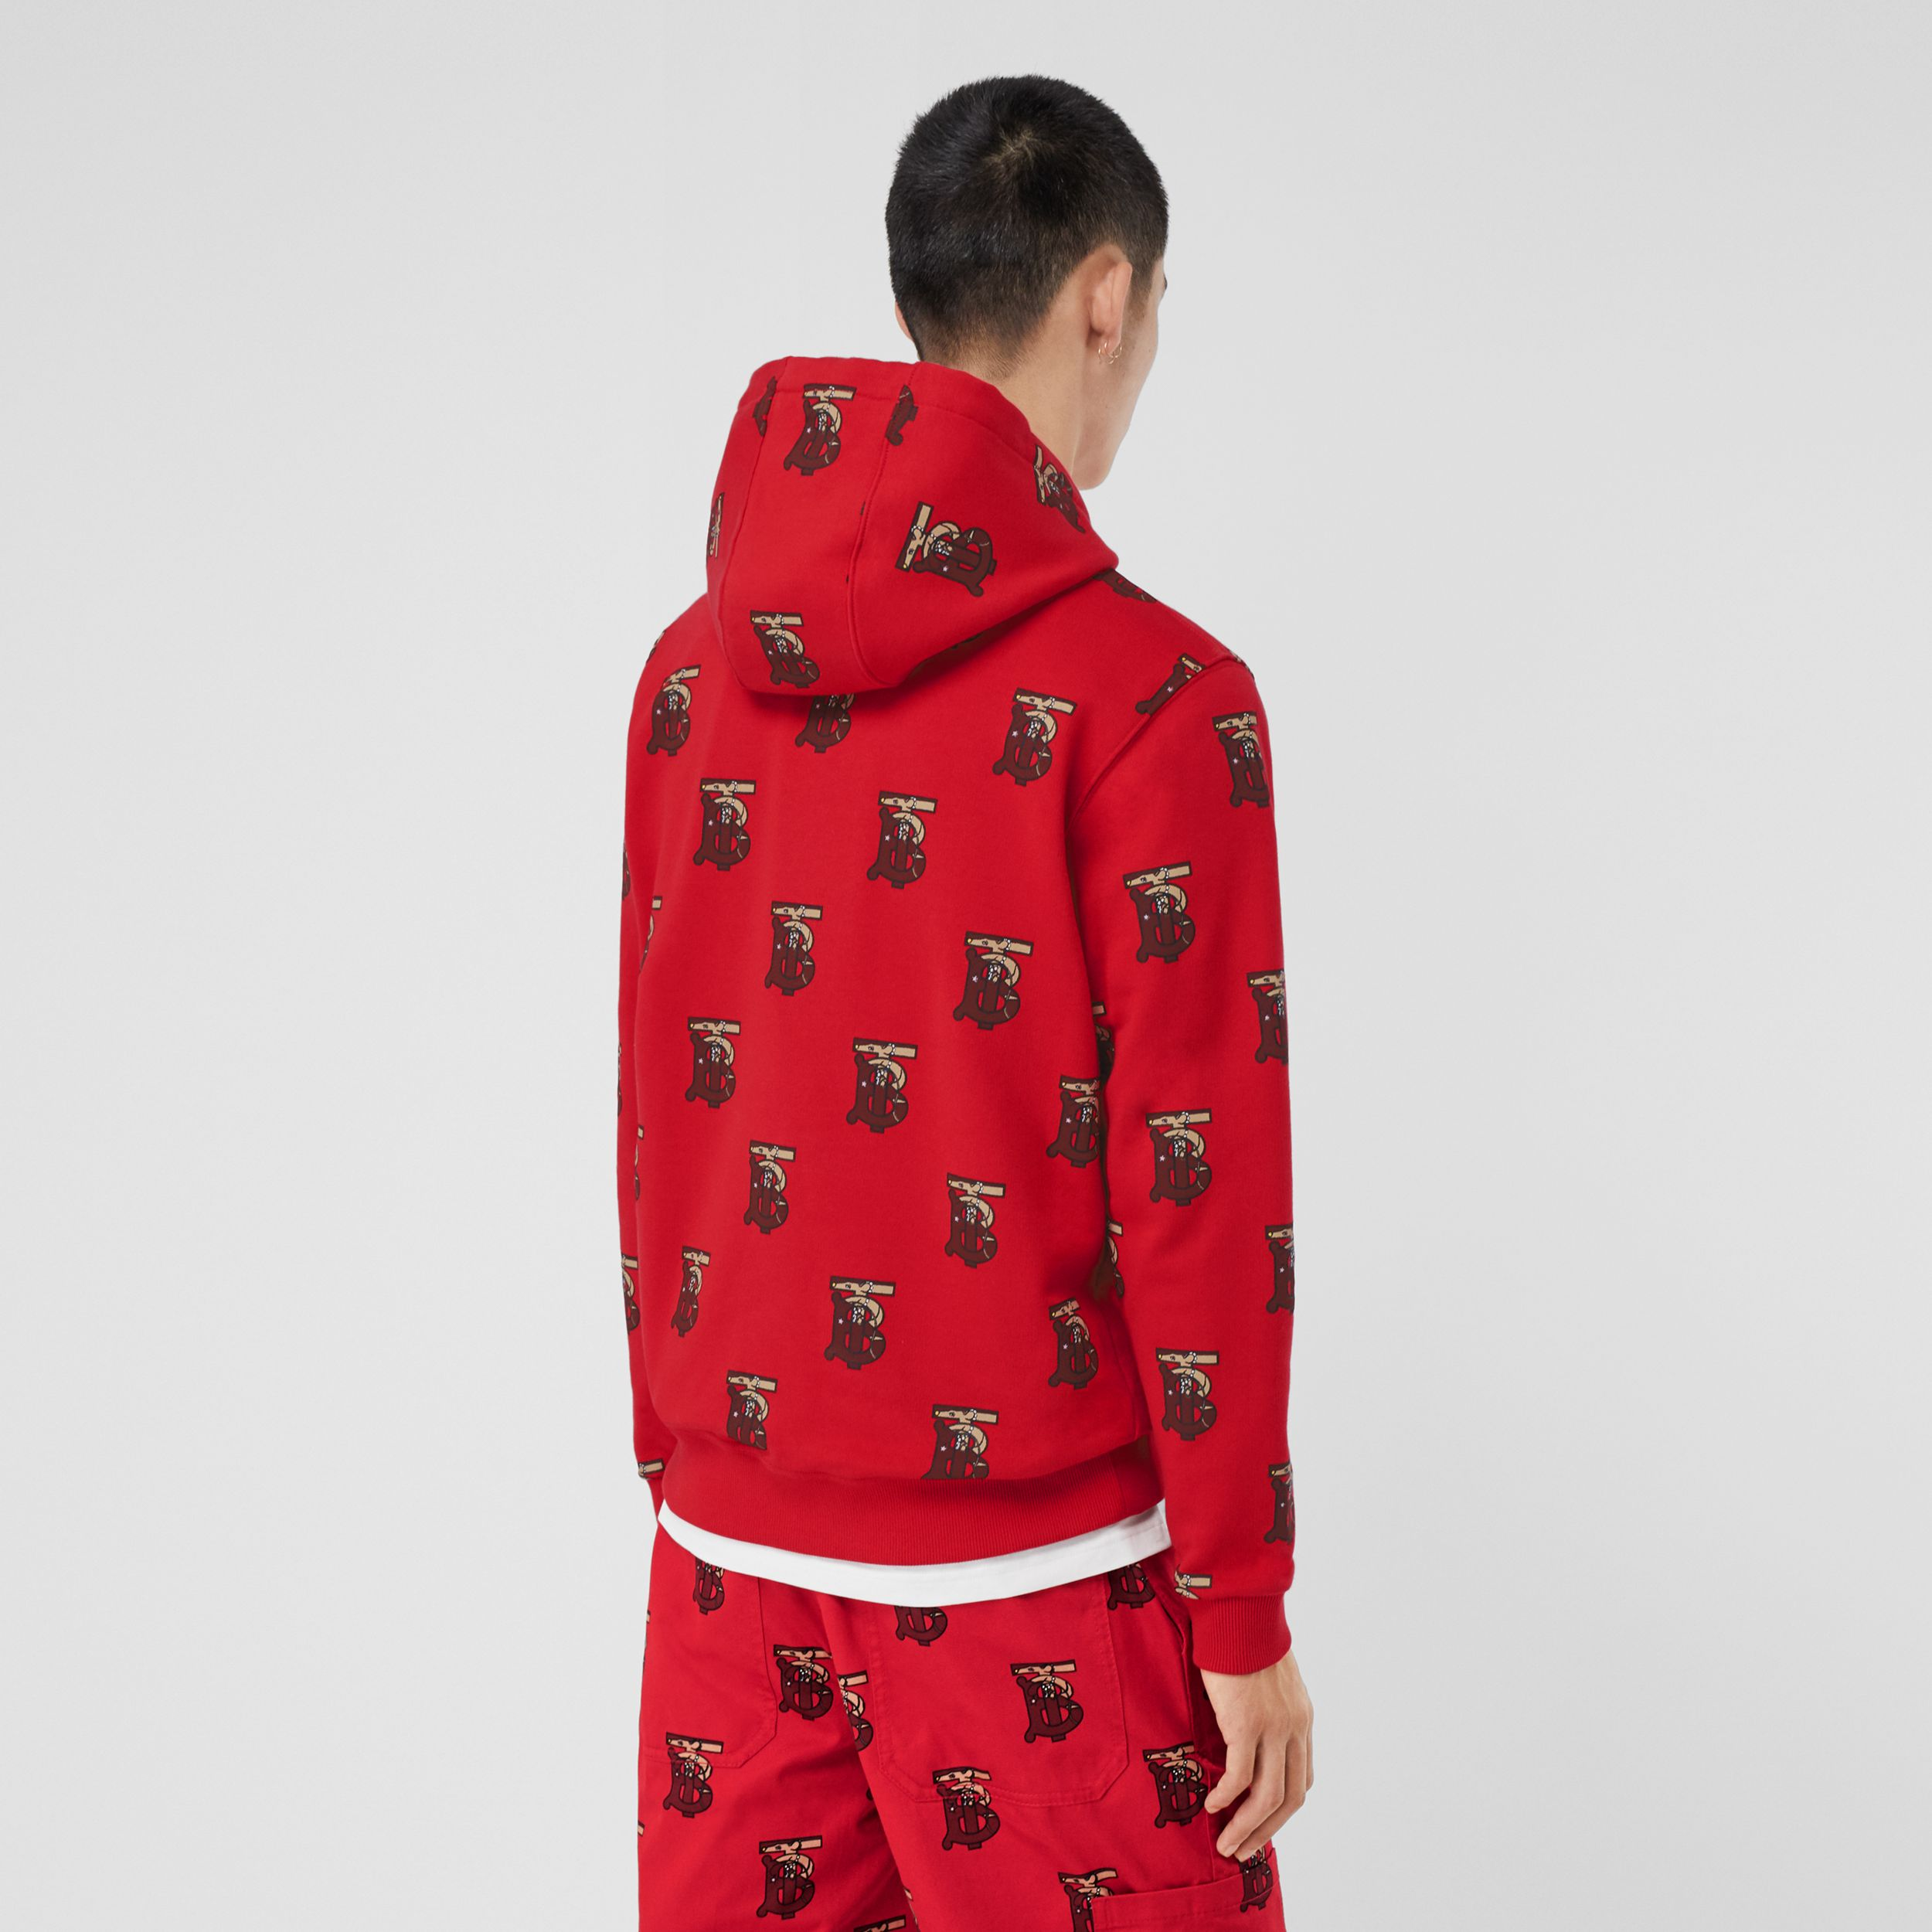 Monogram Motif Cotton Oversized Hoodie in Bright Red - Men | Burberry Hong Kong S.A.R. - 3